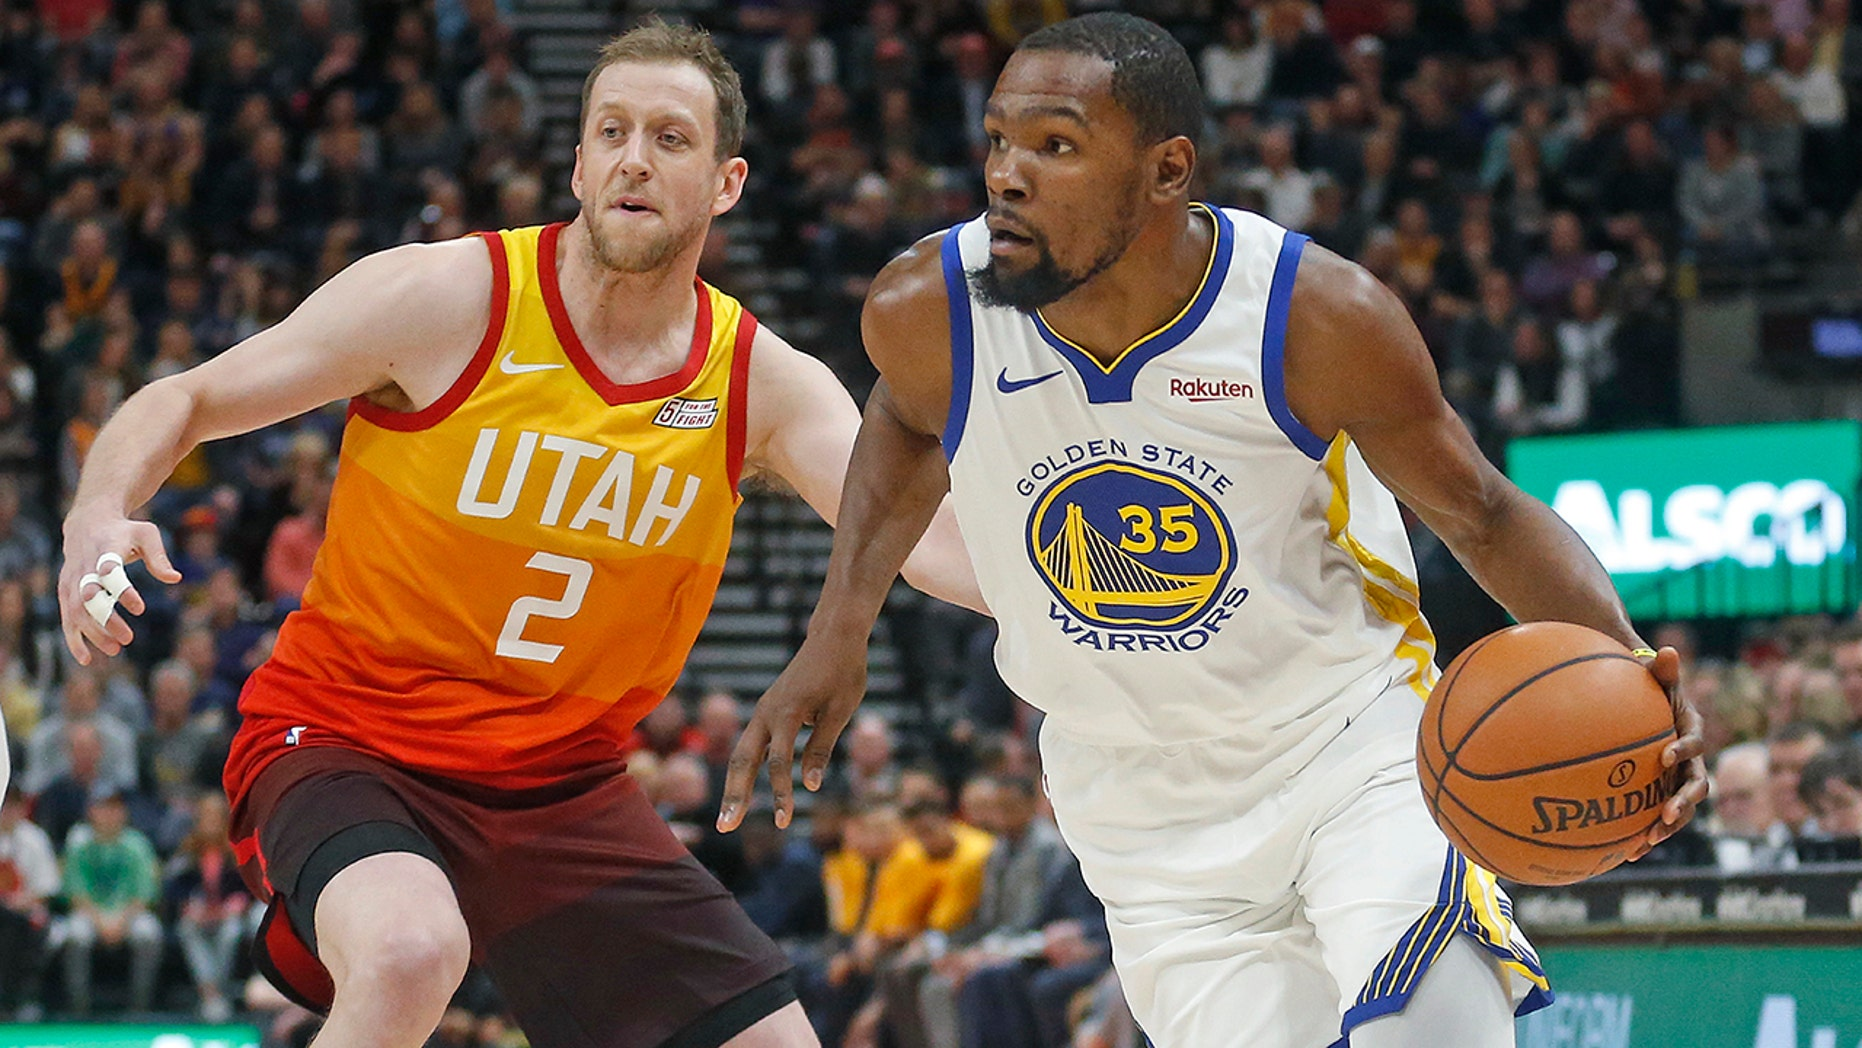 bd8f7f1d2bd2 Golden State Warriors forward Kevin Durant (35) drives around Utah Jazz  forward Joe Ingles